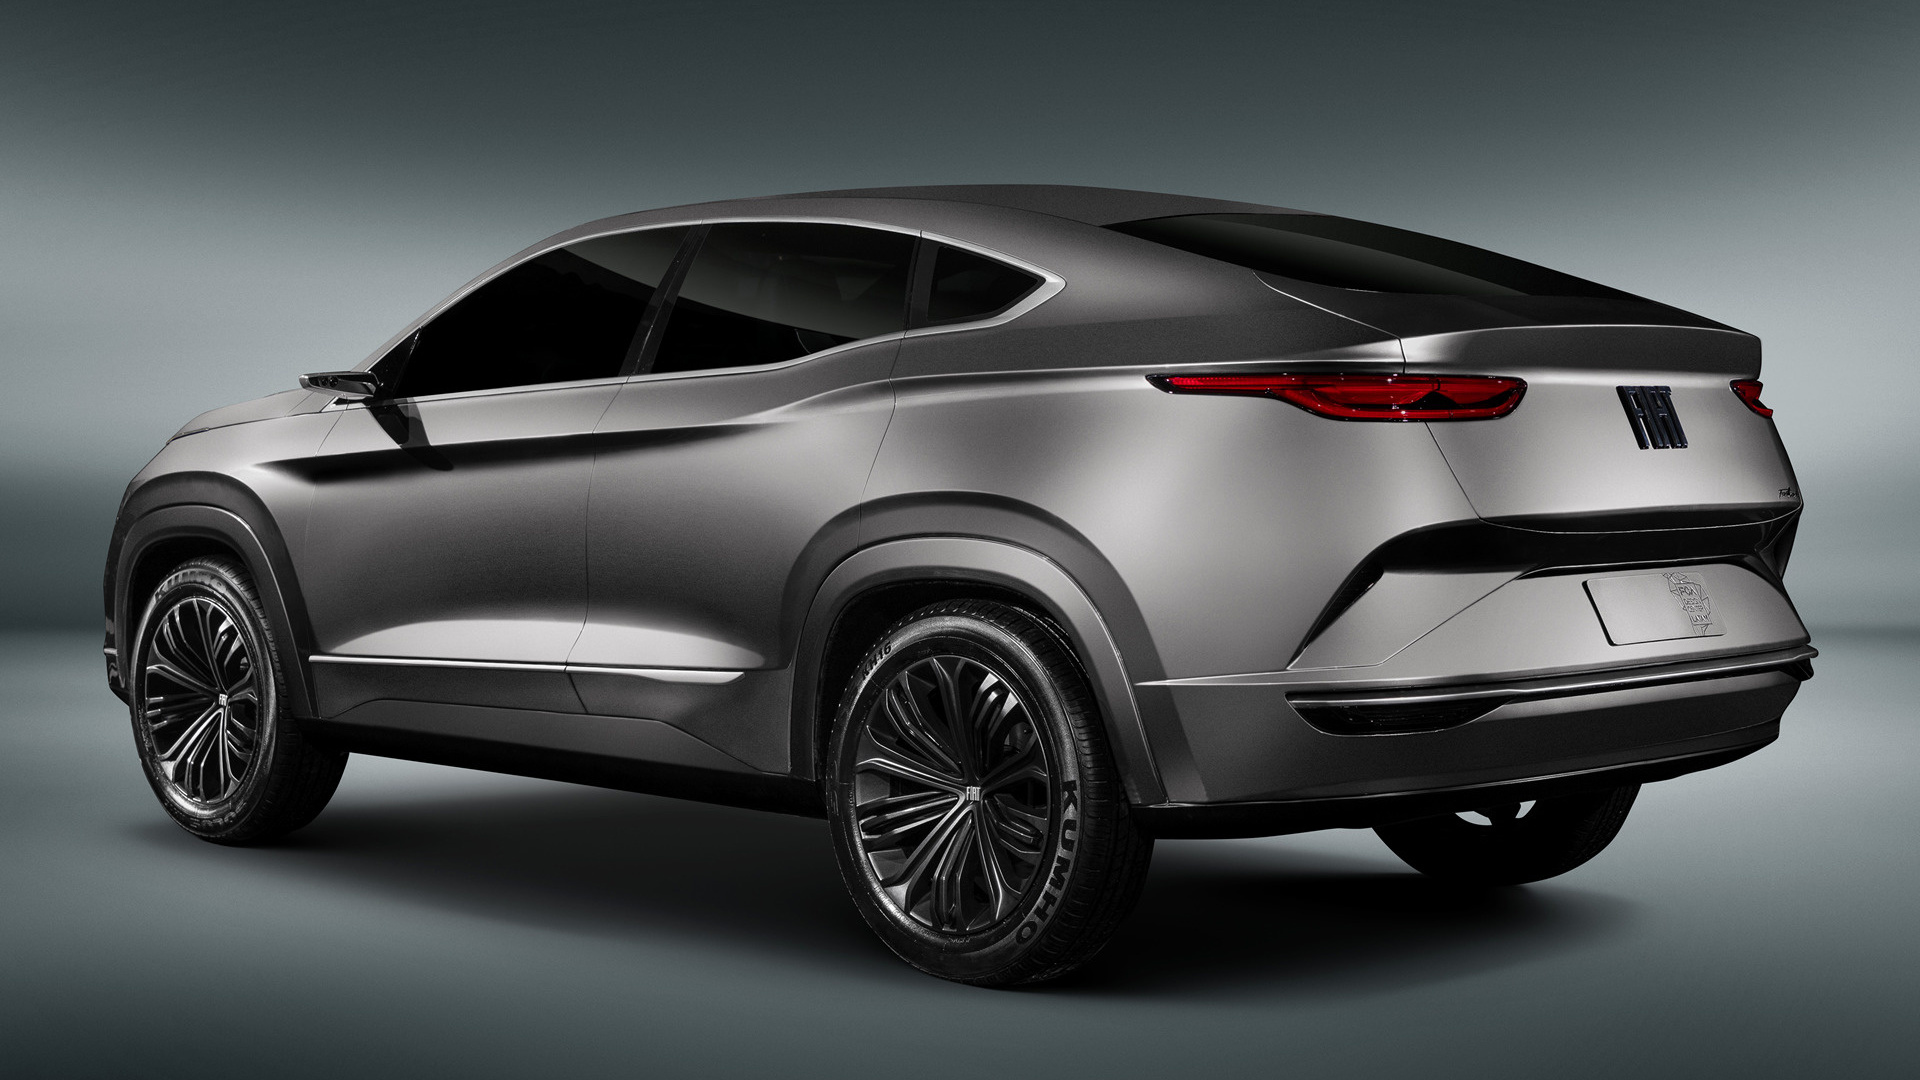 2018 Fiat Fastback Concept Wallpapers And Hd Images